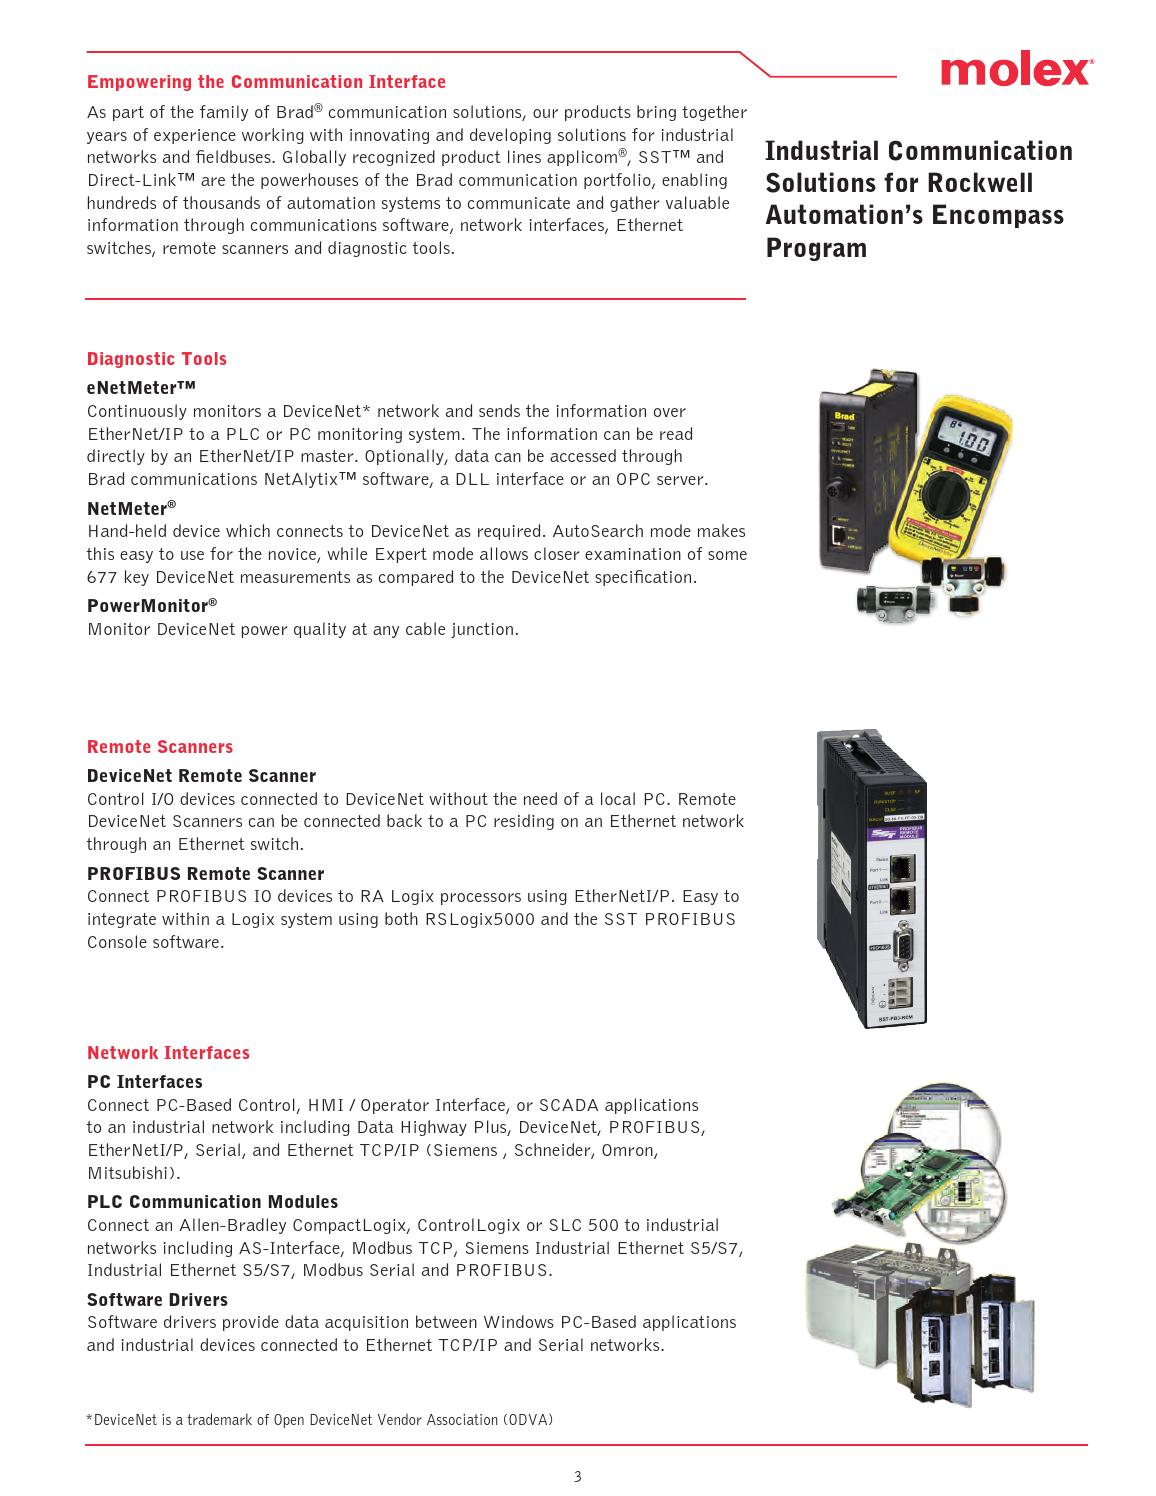 Molex Industrial Communication Solutions for Encompass™ by